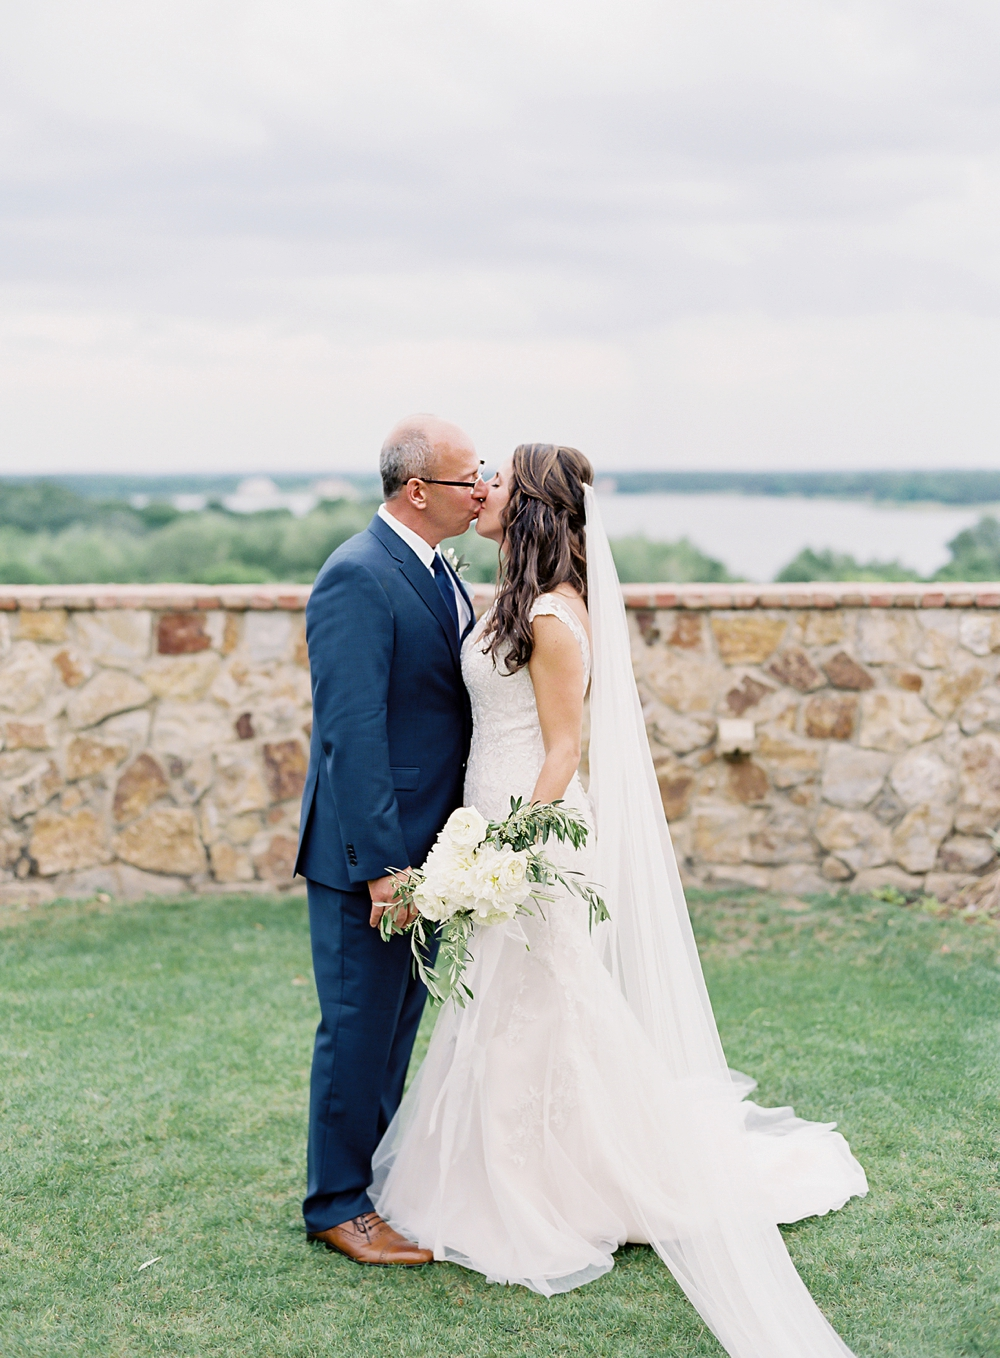 Vicki Grafton Photography - Fine Art Film Wedding Photographer - Bella Collina Wedding_0059.jpg